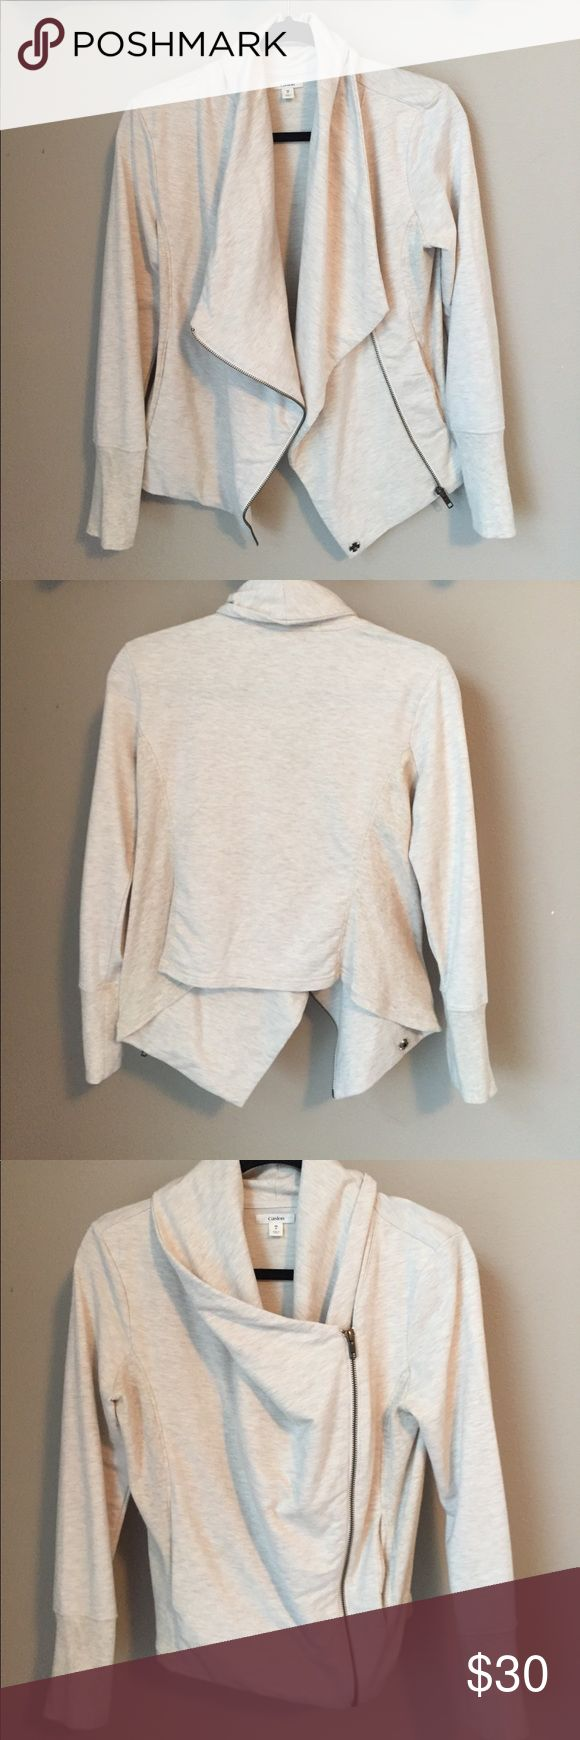 Caslon cream zip up wrapped jacket This top has been worn twice. It's in excellent condition!! Great for a casual or dress up event!! Caslon Jackets & Coats